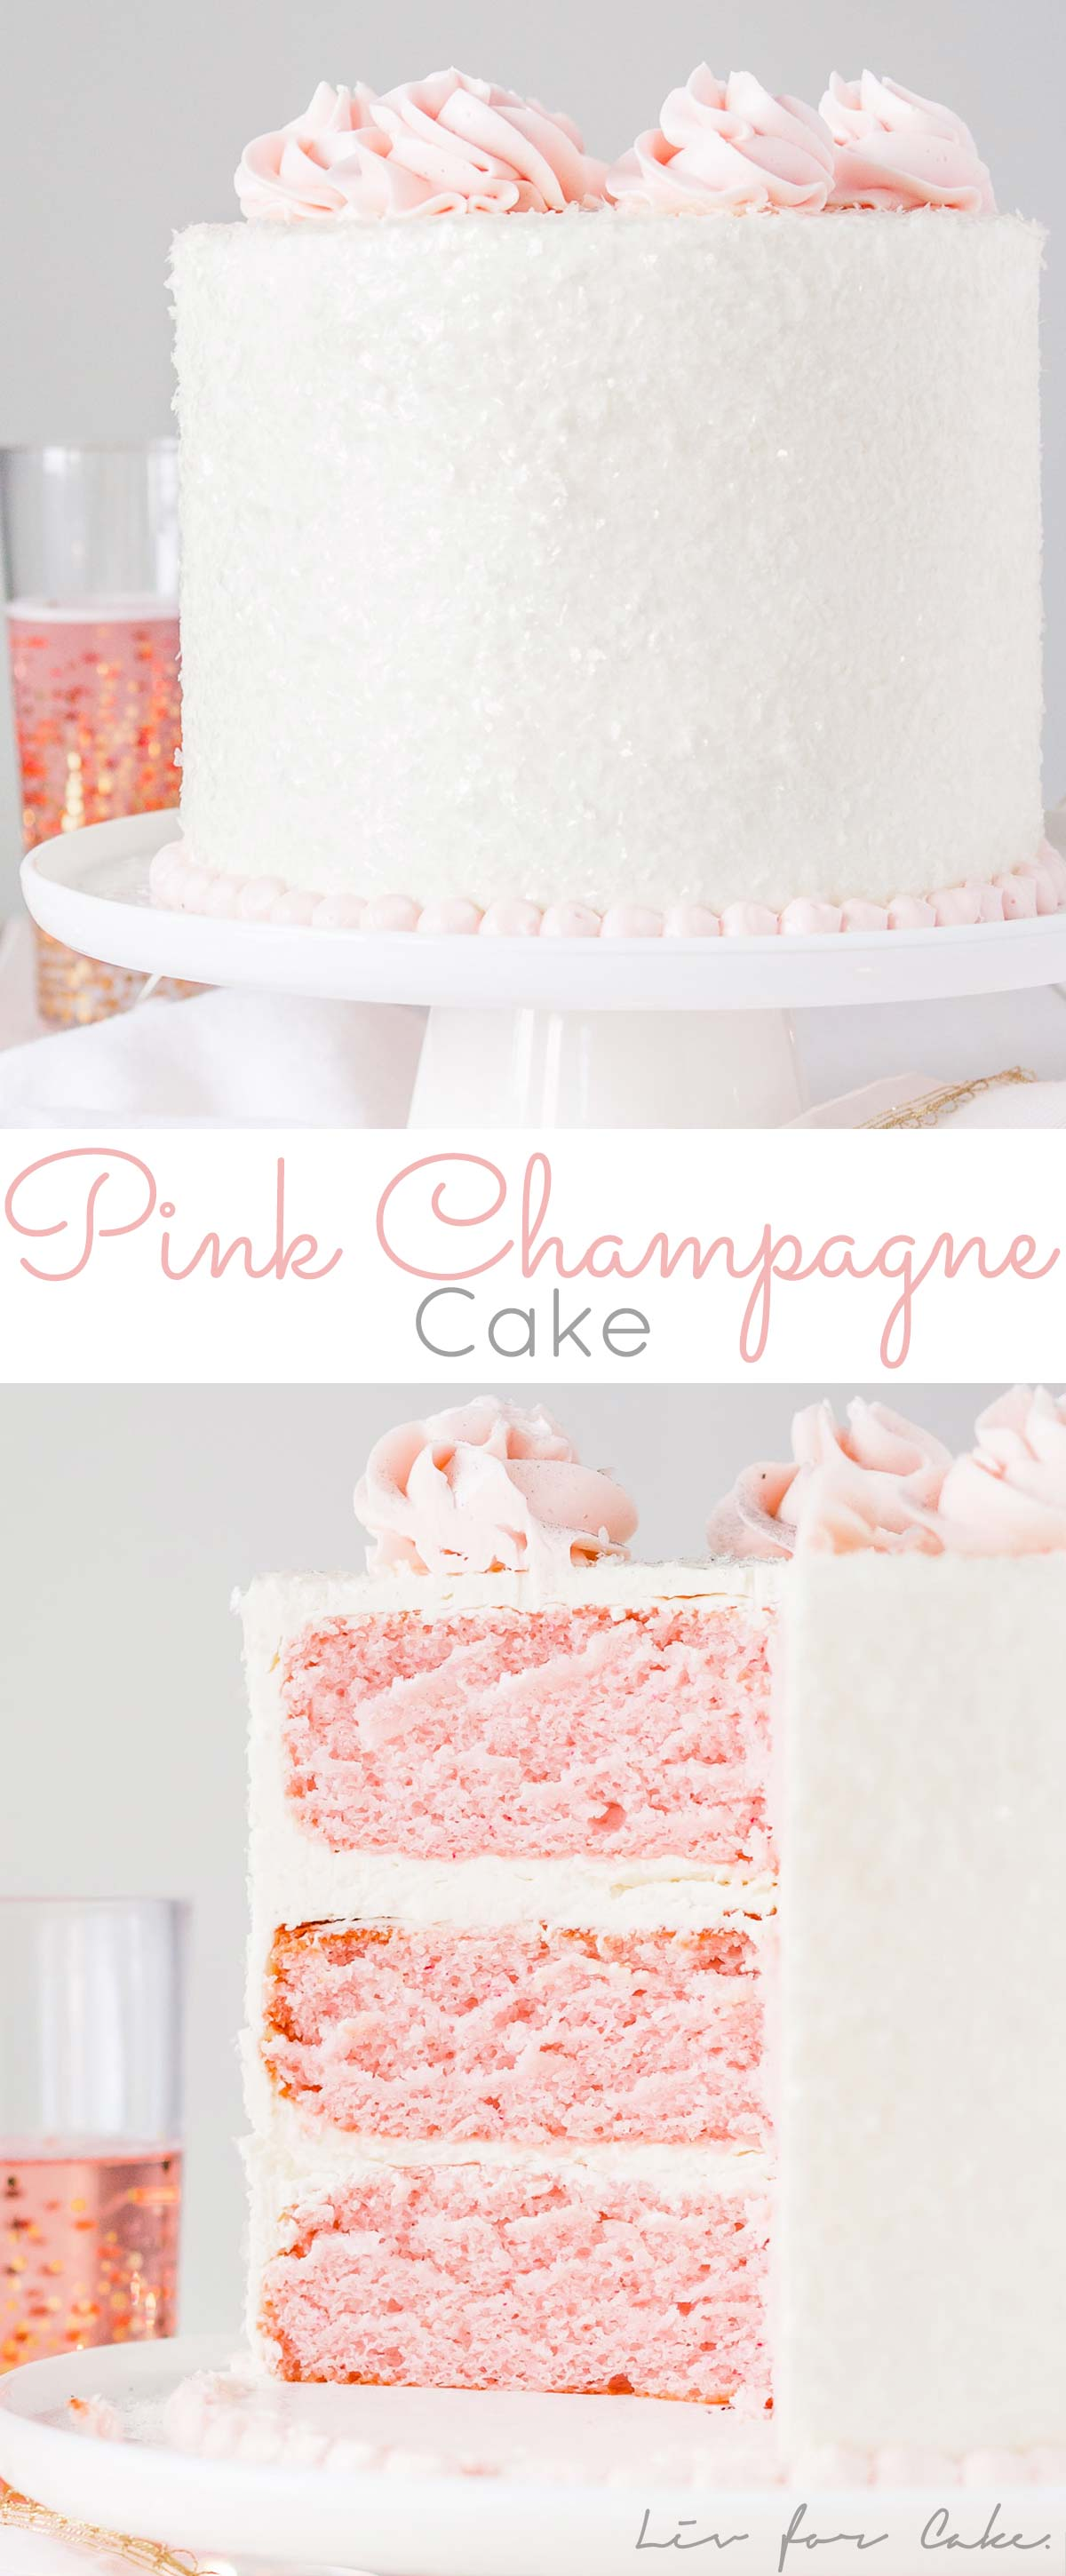 This Pink Champagne Cake Is The Perfect Way To Celebrate Any Occasion Or Holiday A